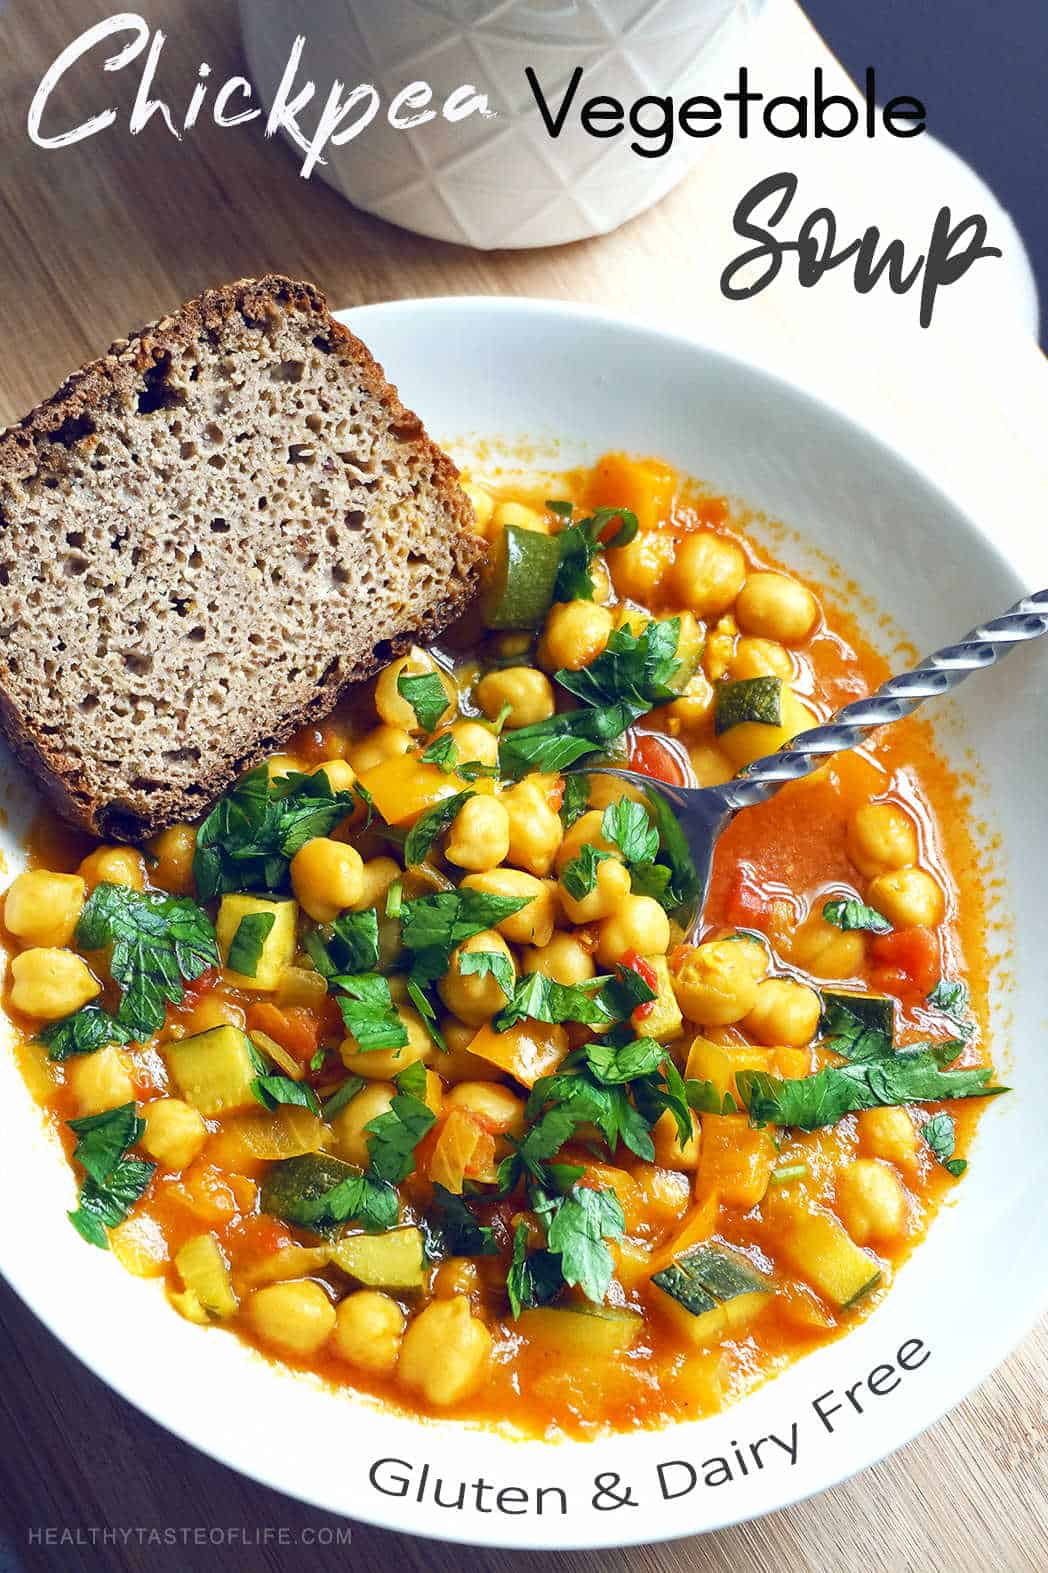 Chickpea Vegetable Soup Gluten Free Dairy Free Recipe